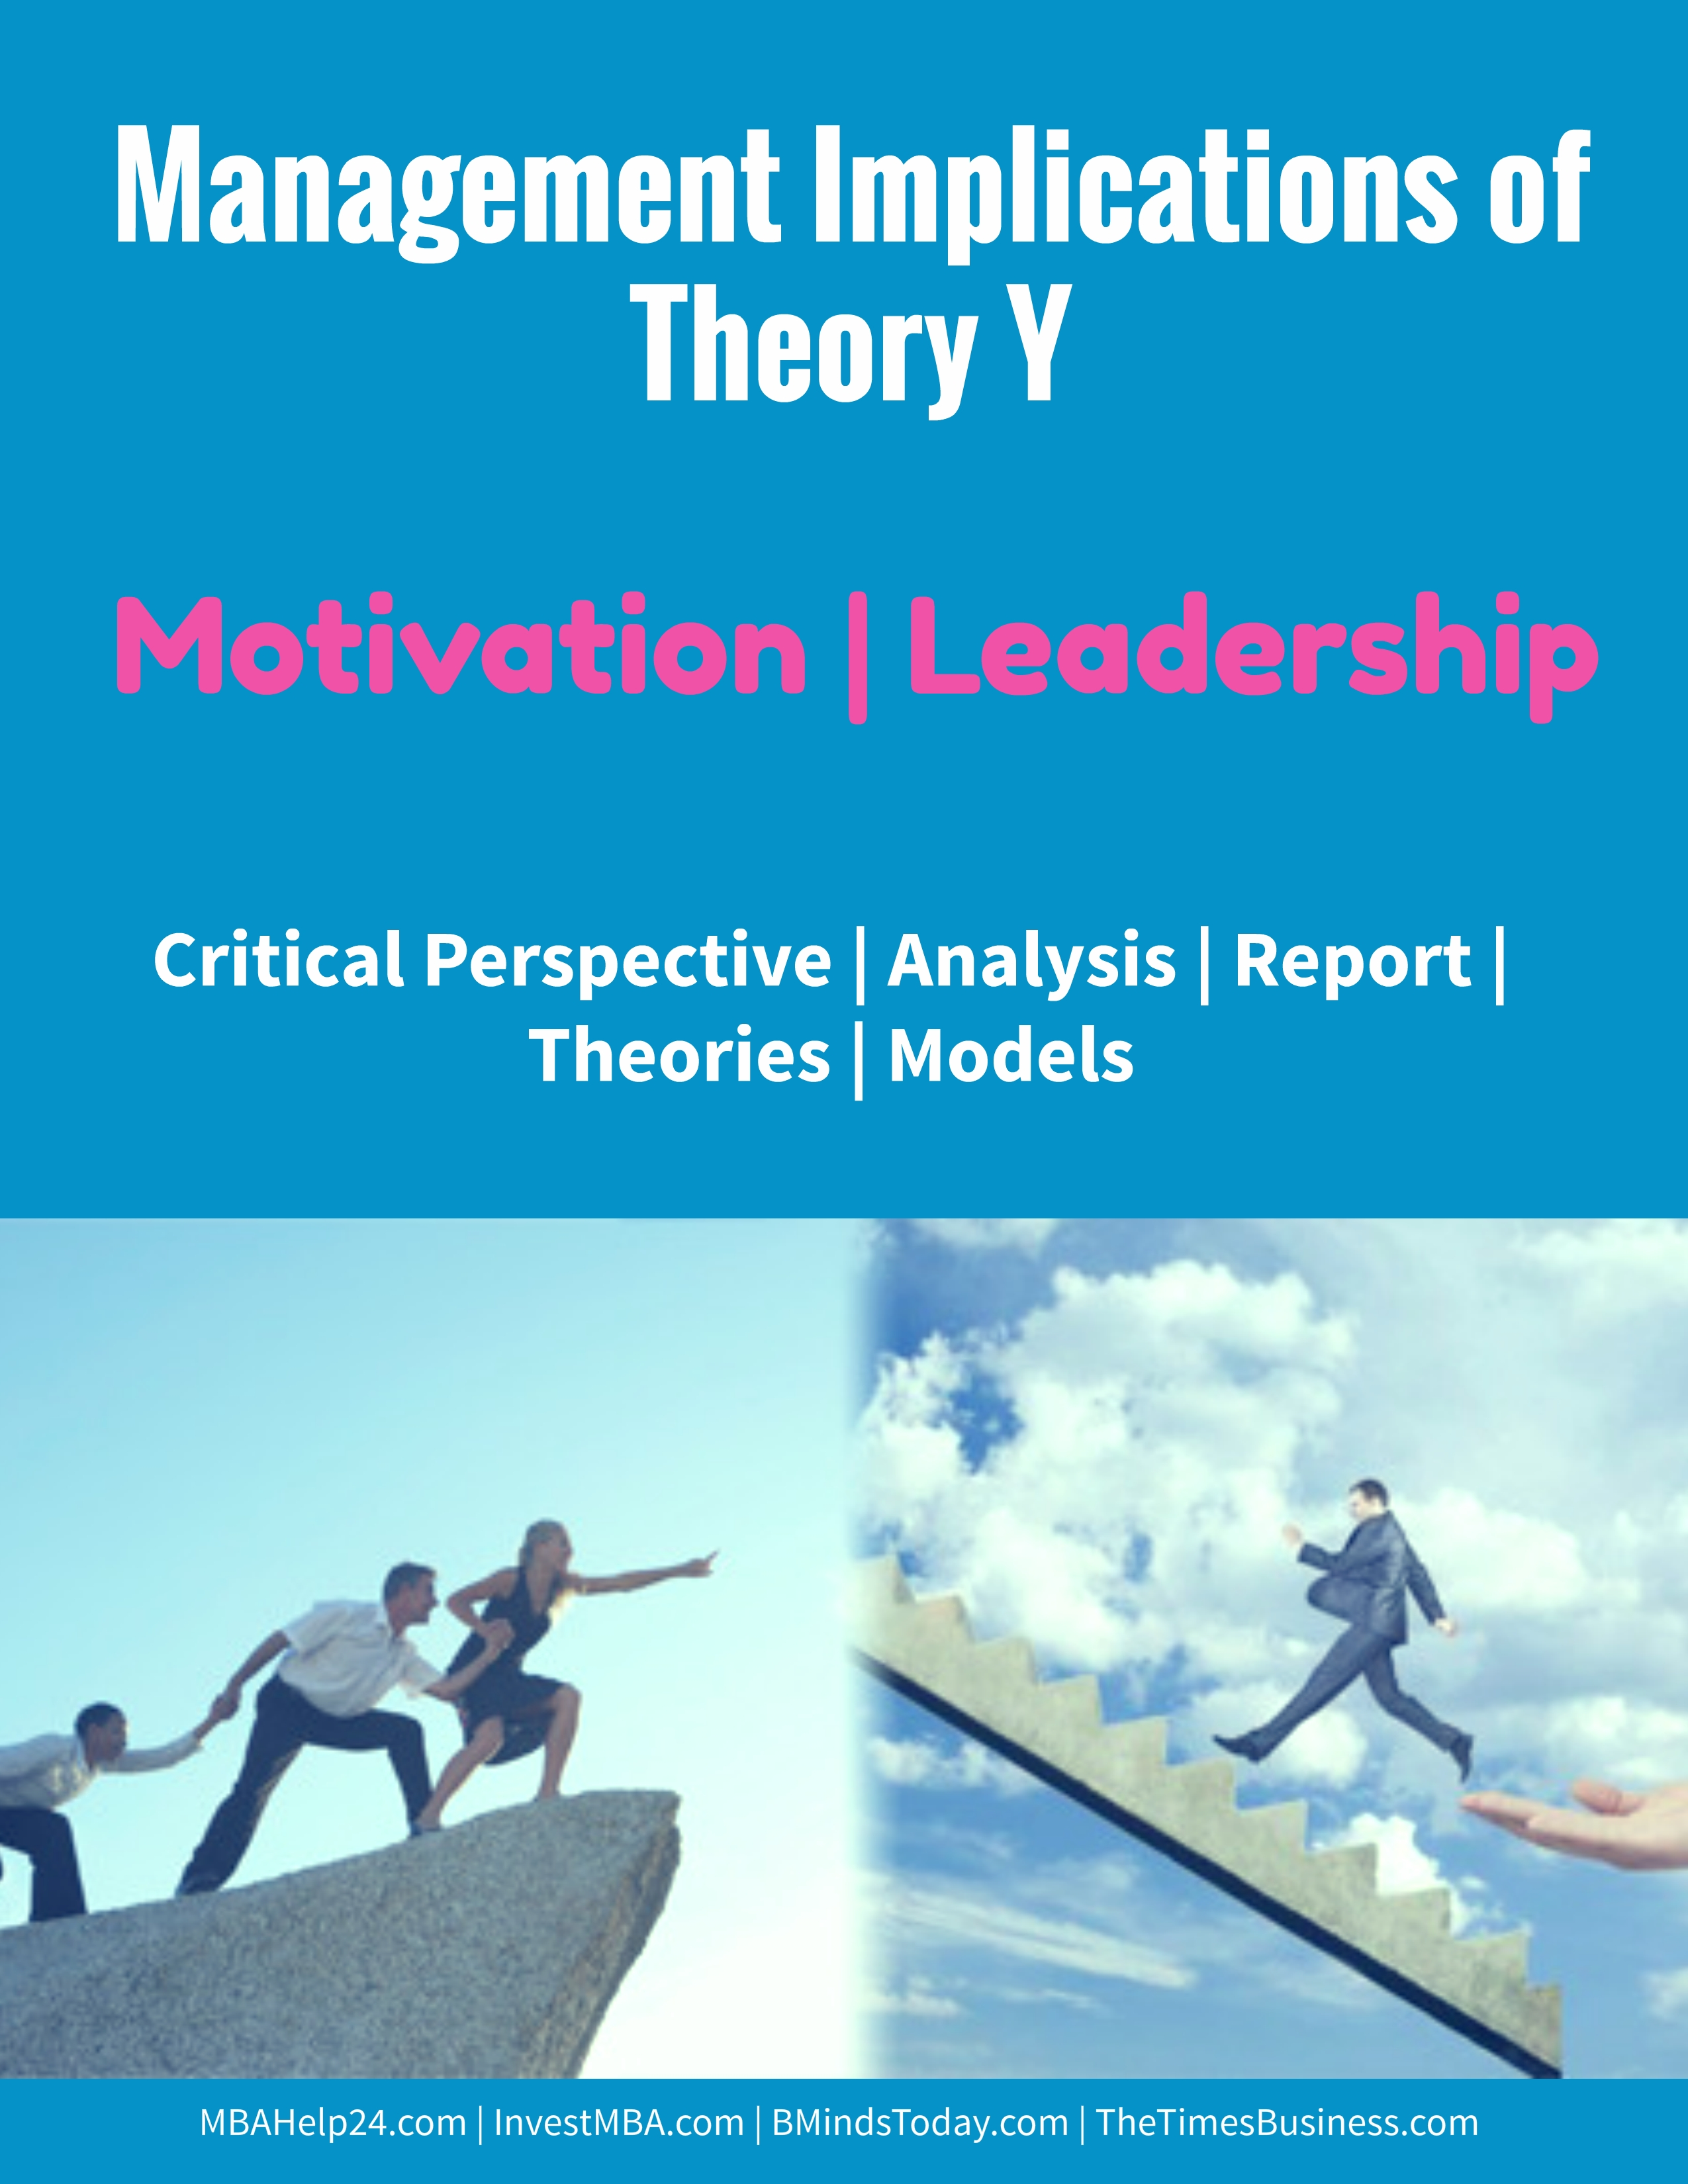 Management Implications of Theory Y | Motivation | Leadership theory y Management Implications of Theory Y | Motivation | Leadership management implications of theory y management implications of theory y | motivation Management Implications of Theory Y | Motivation management implications of theory y